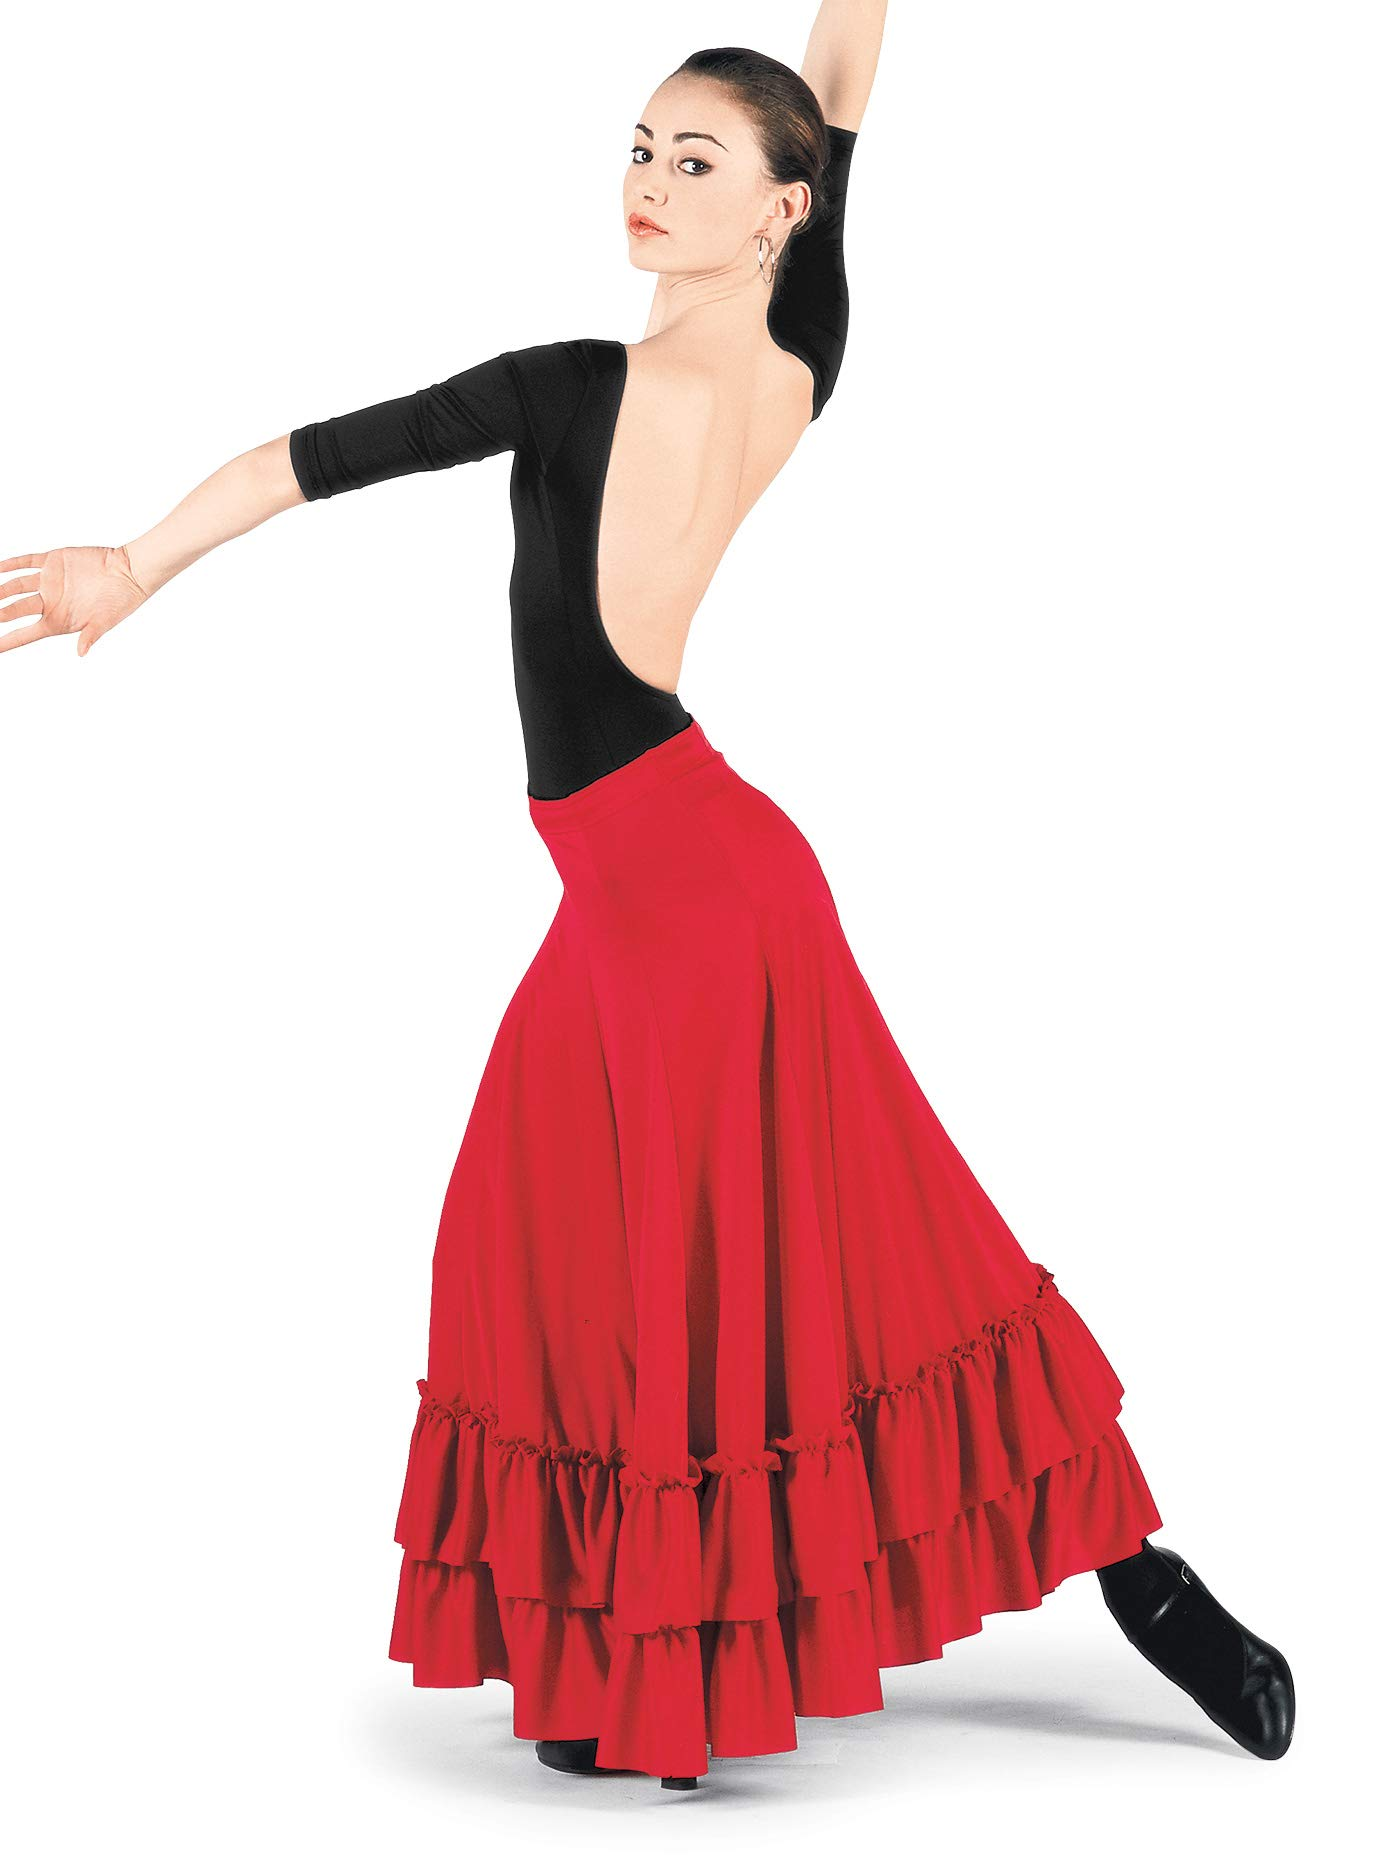 Adult Flamenco Skirt,9100BLKS,Black,Small by Bal Togs